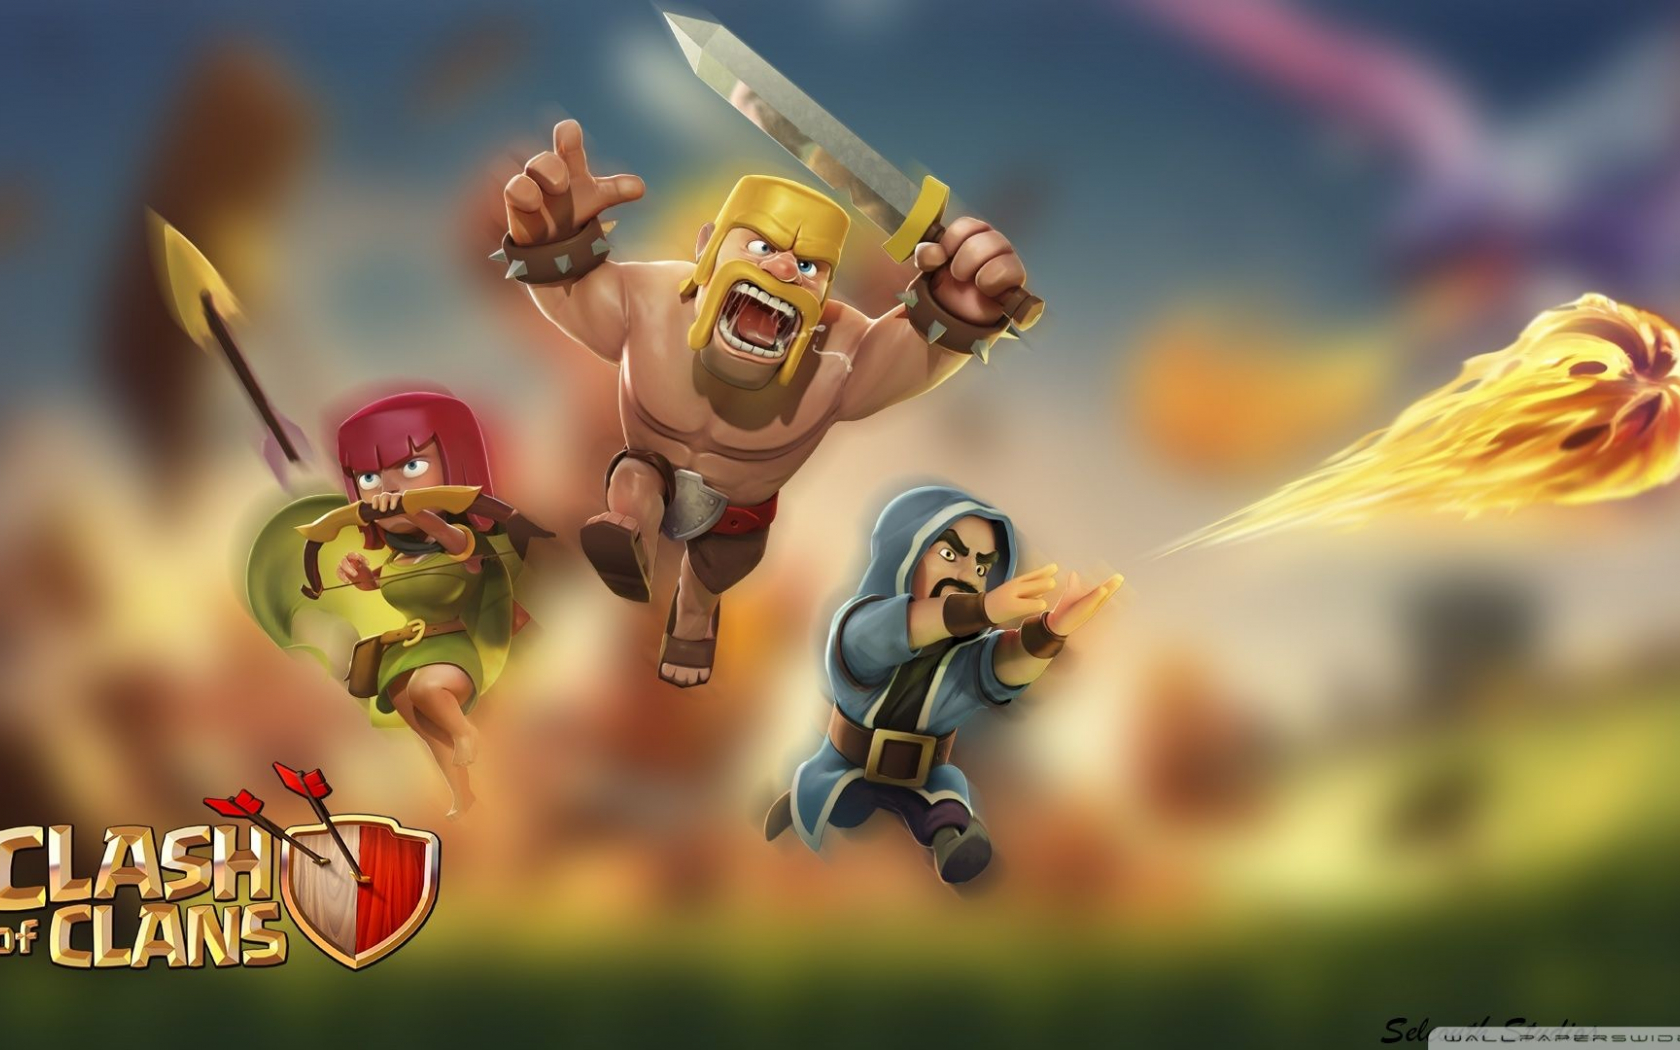 Free Download 60 Wallpaper Hd Android Clash Of Clans Coc Terbaru